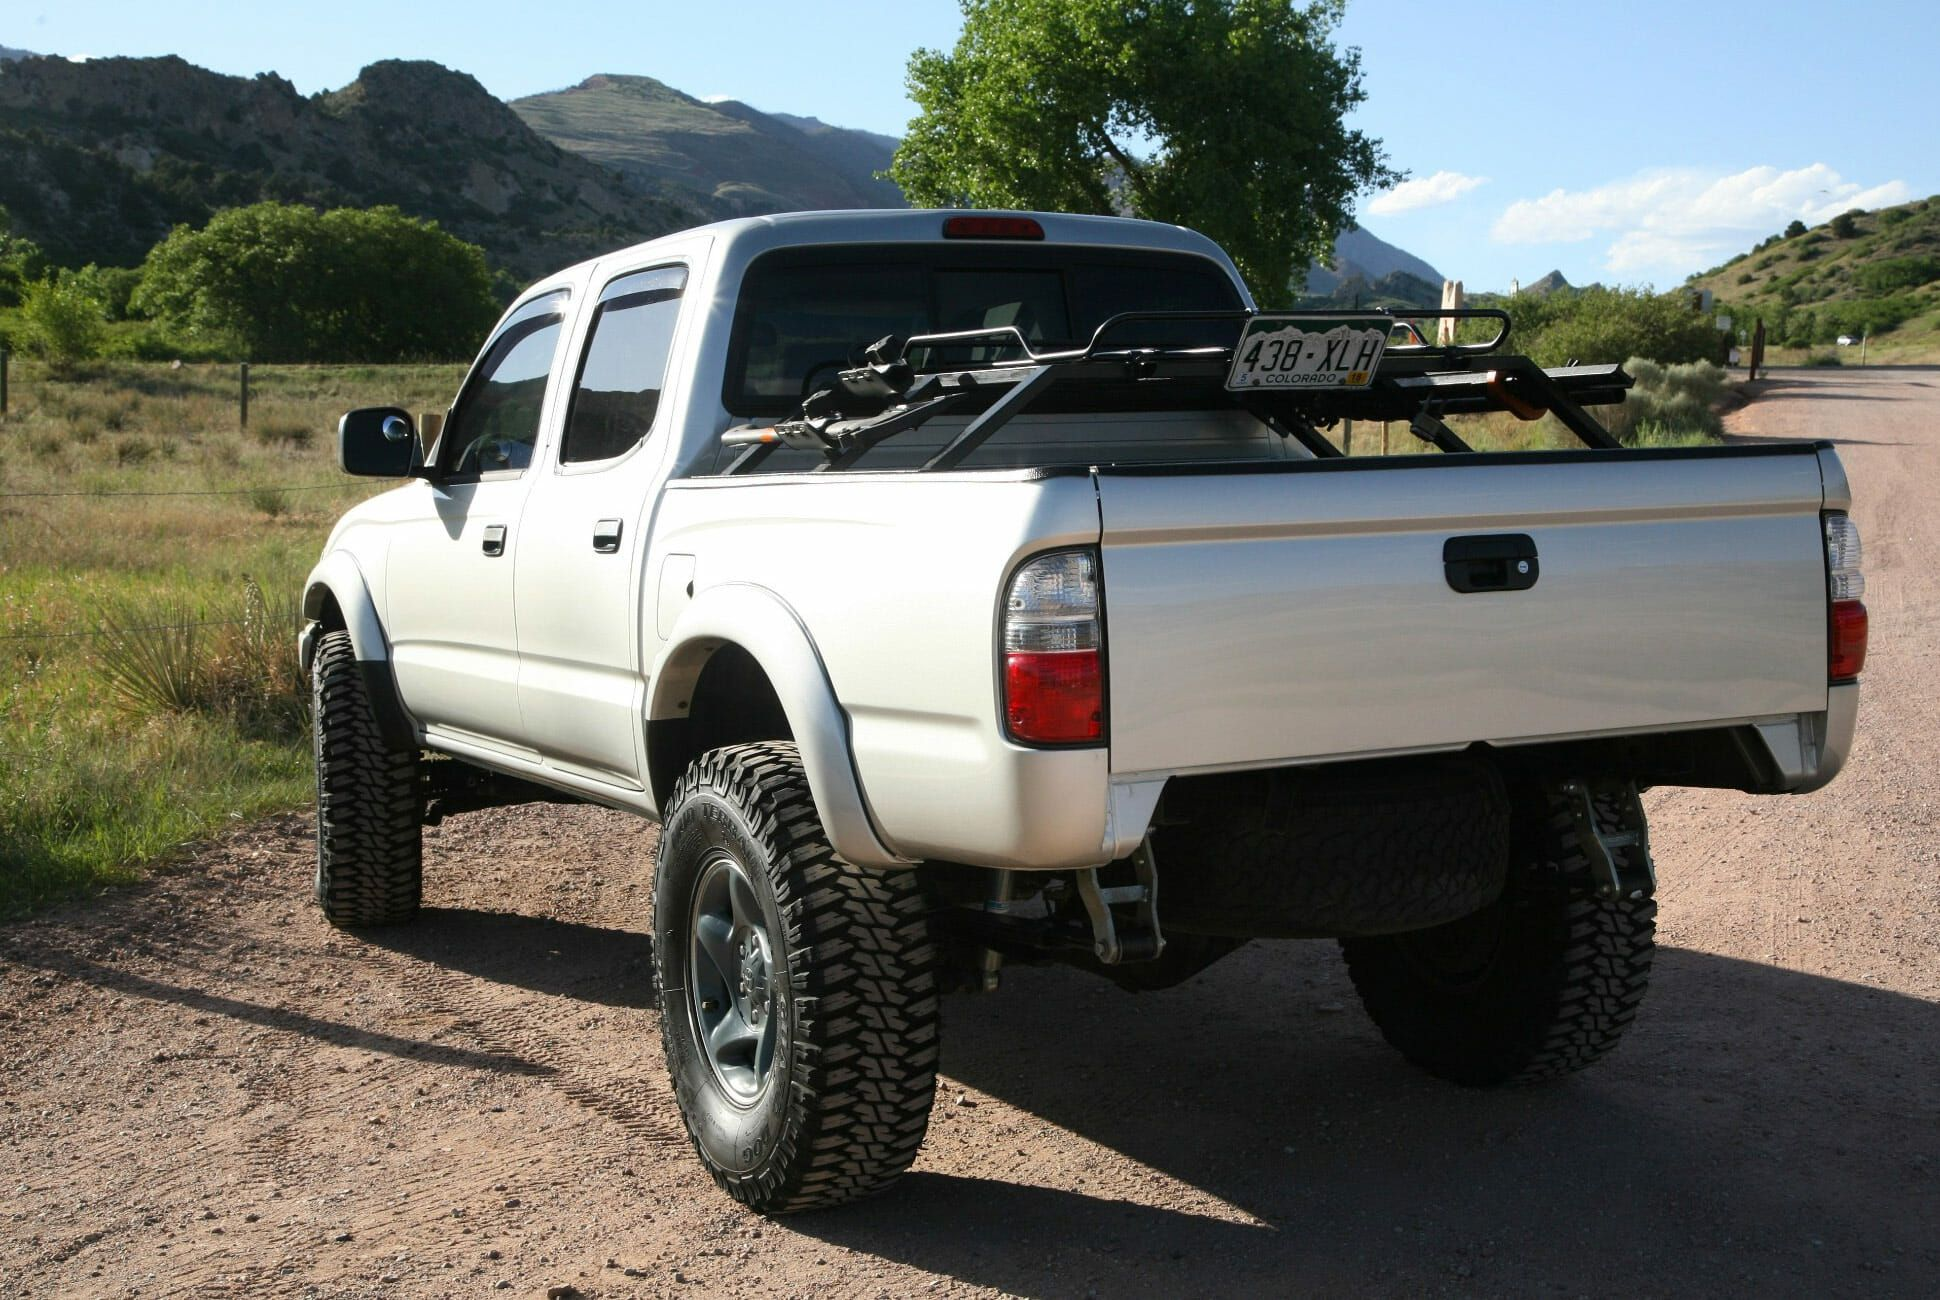 Found-2002-Toyota-Tacoma-TRD-Limited-Double-Cab-slide-3